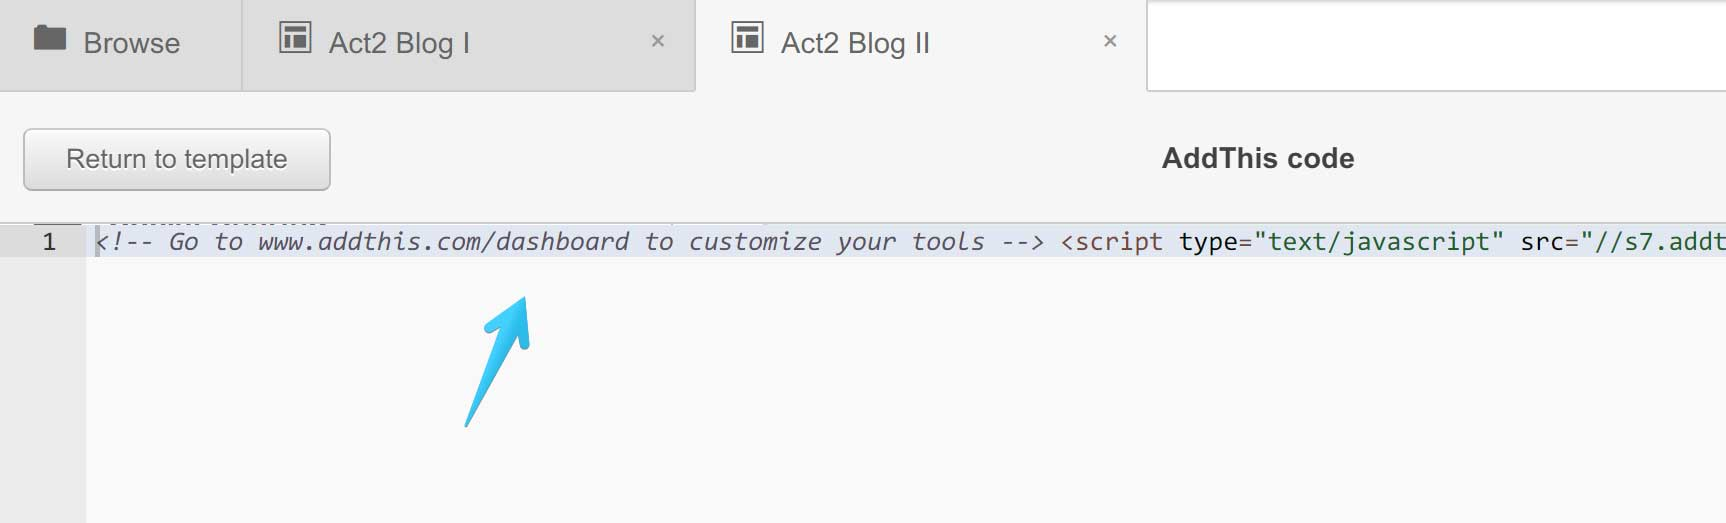 Act2 Template Builder Blog II Paste Your AddThis code